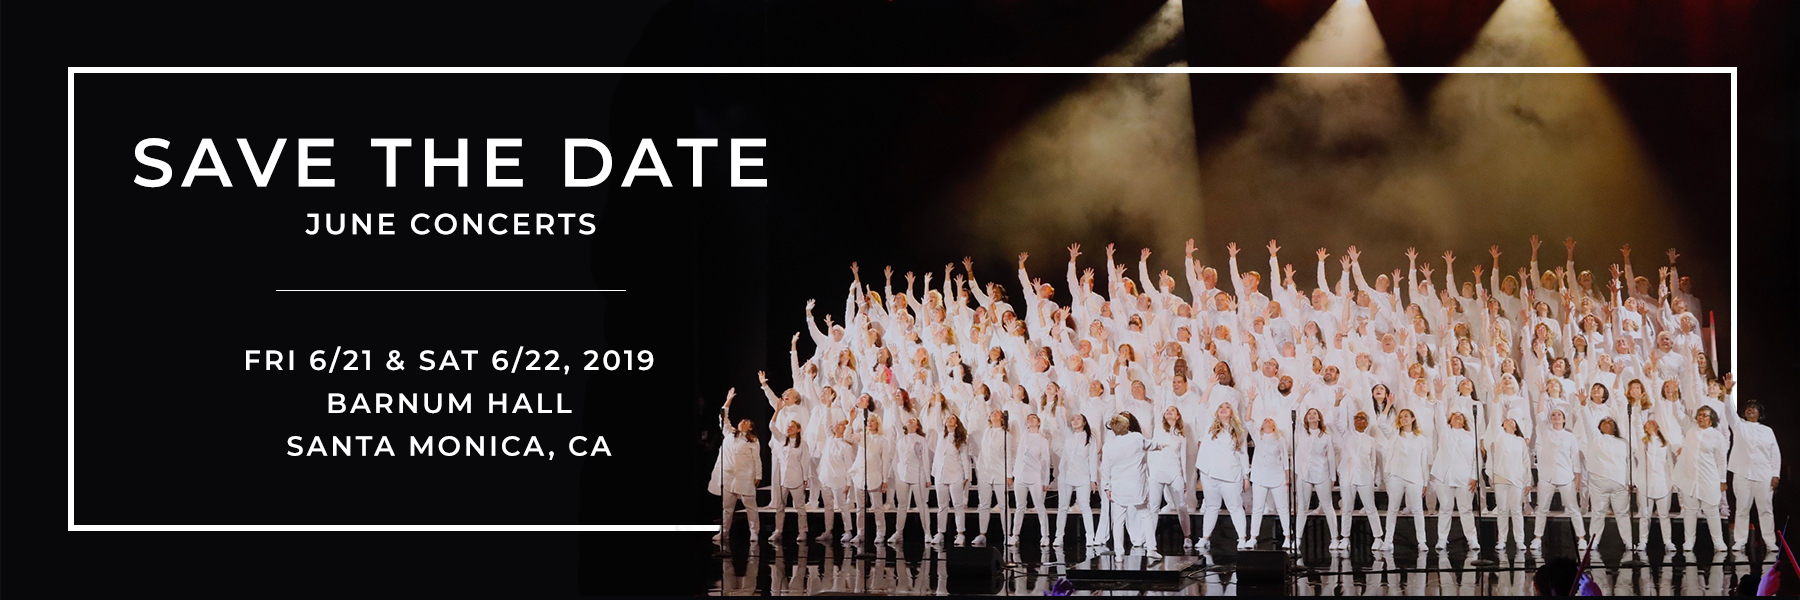 Save the date: June concerts are June 21 and June 22, 2019 at Barnum Hall in Santa Monica, CA